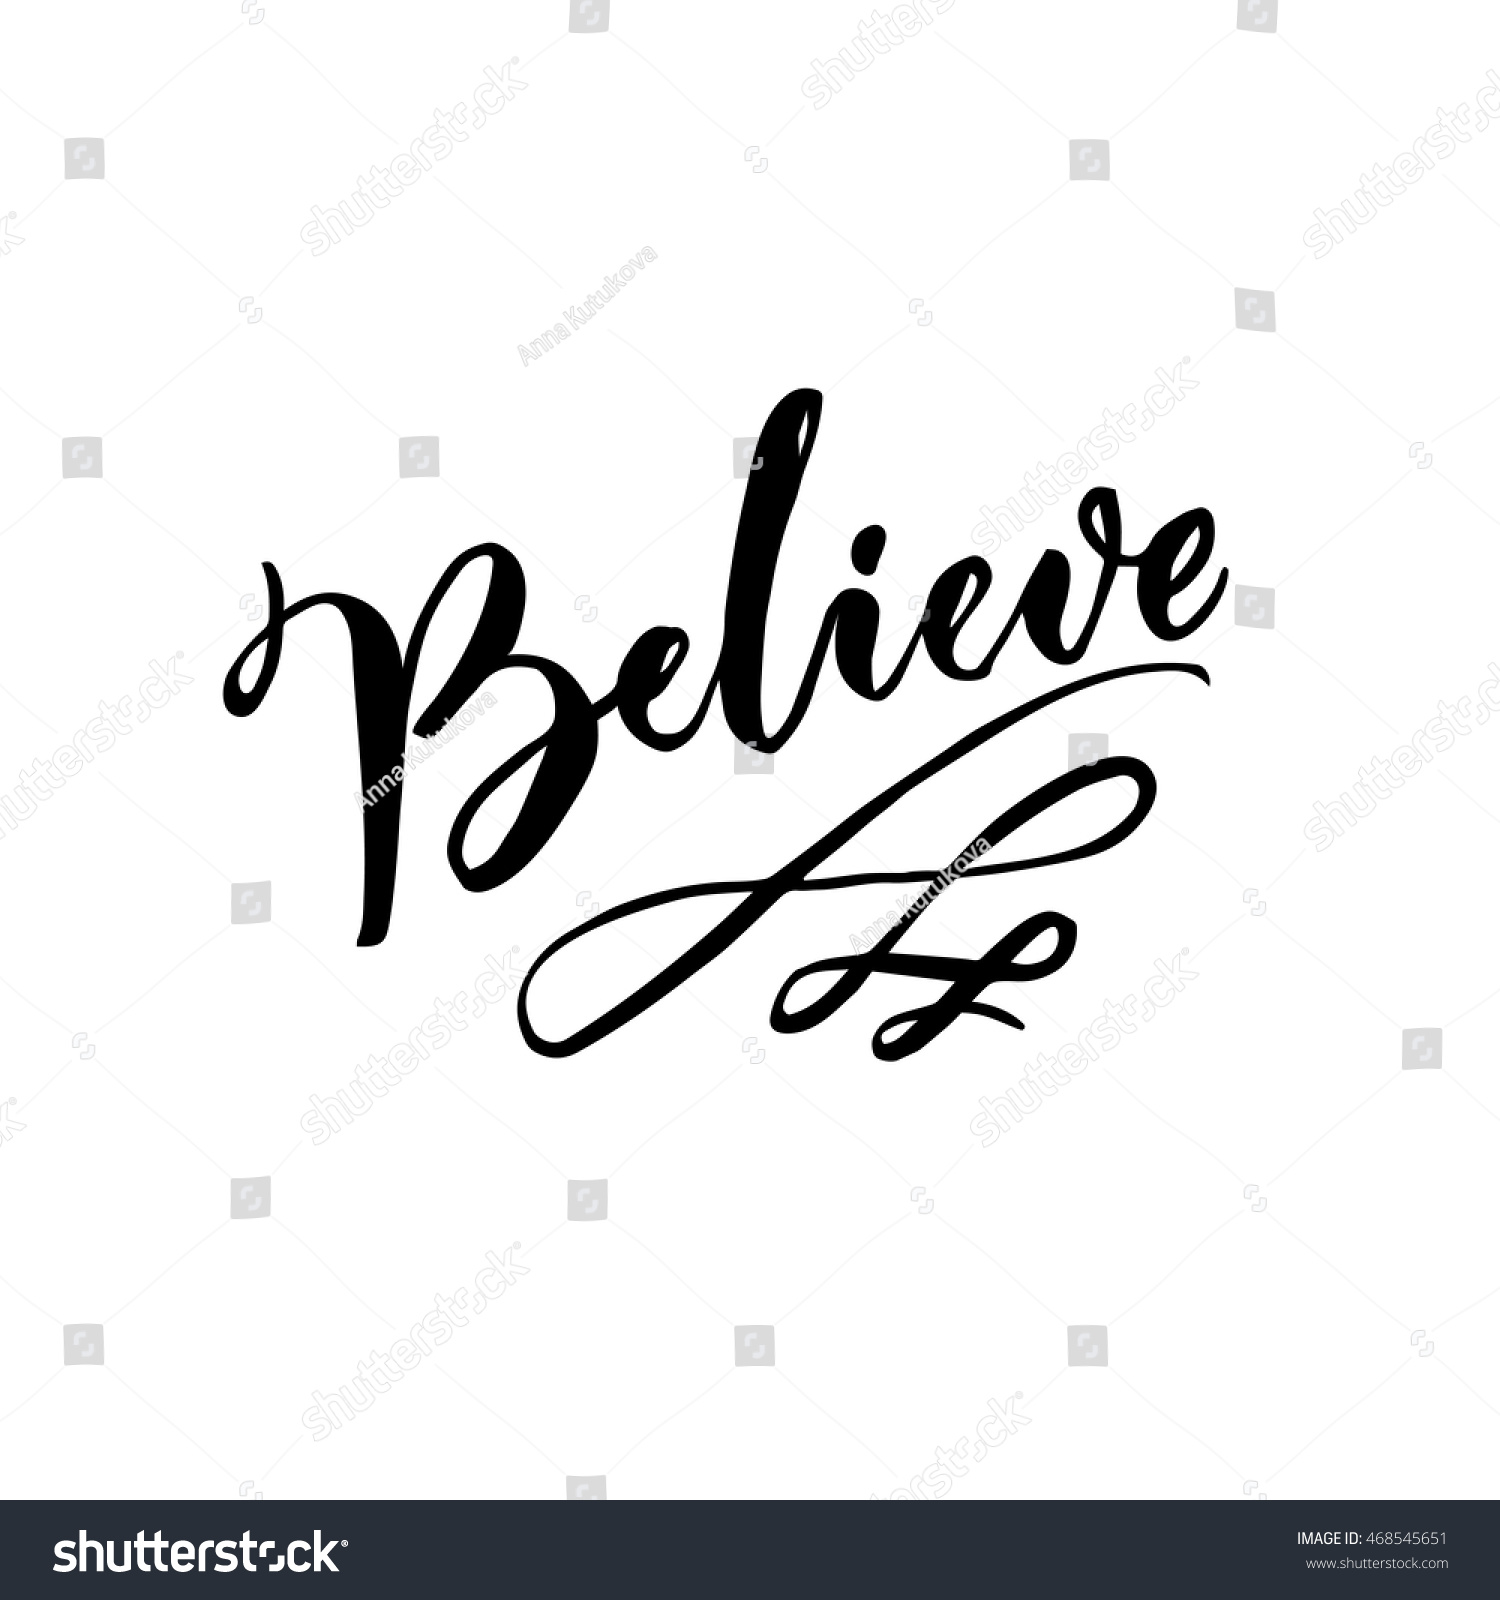 Believe word calligraphy text swashes stock vector